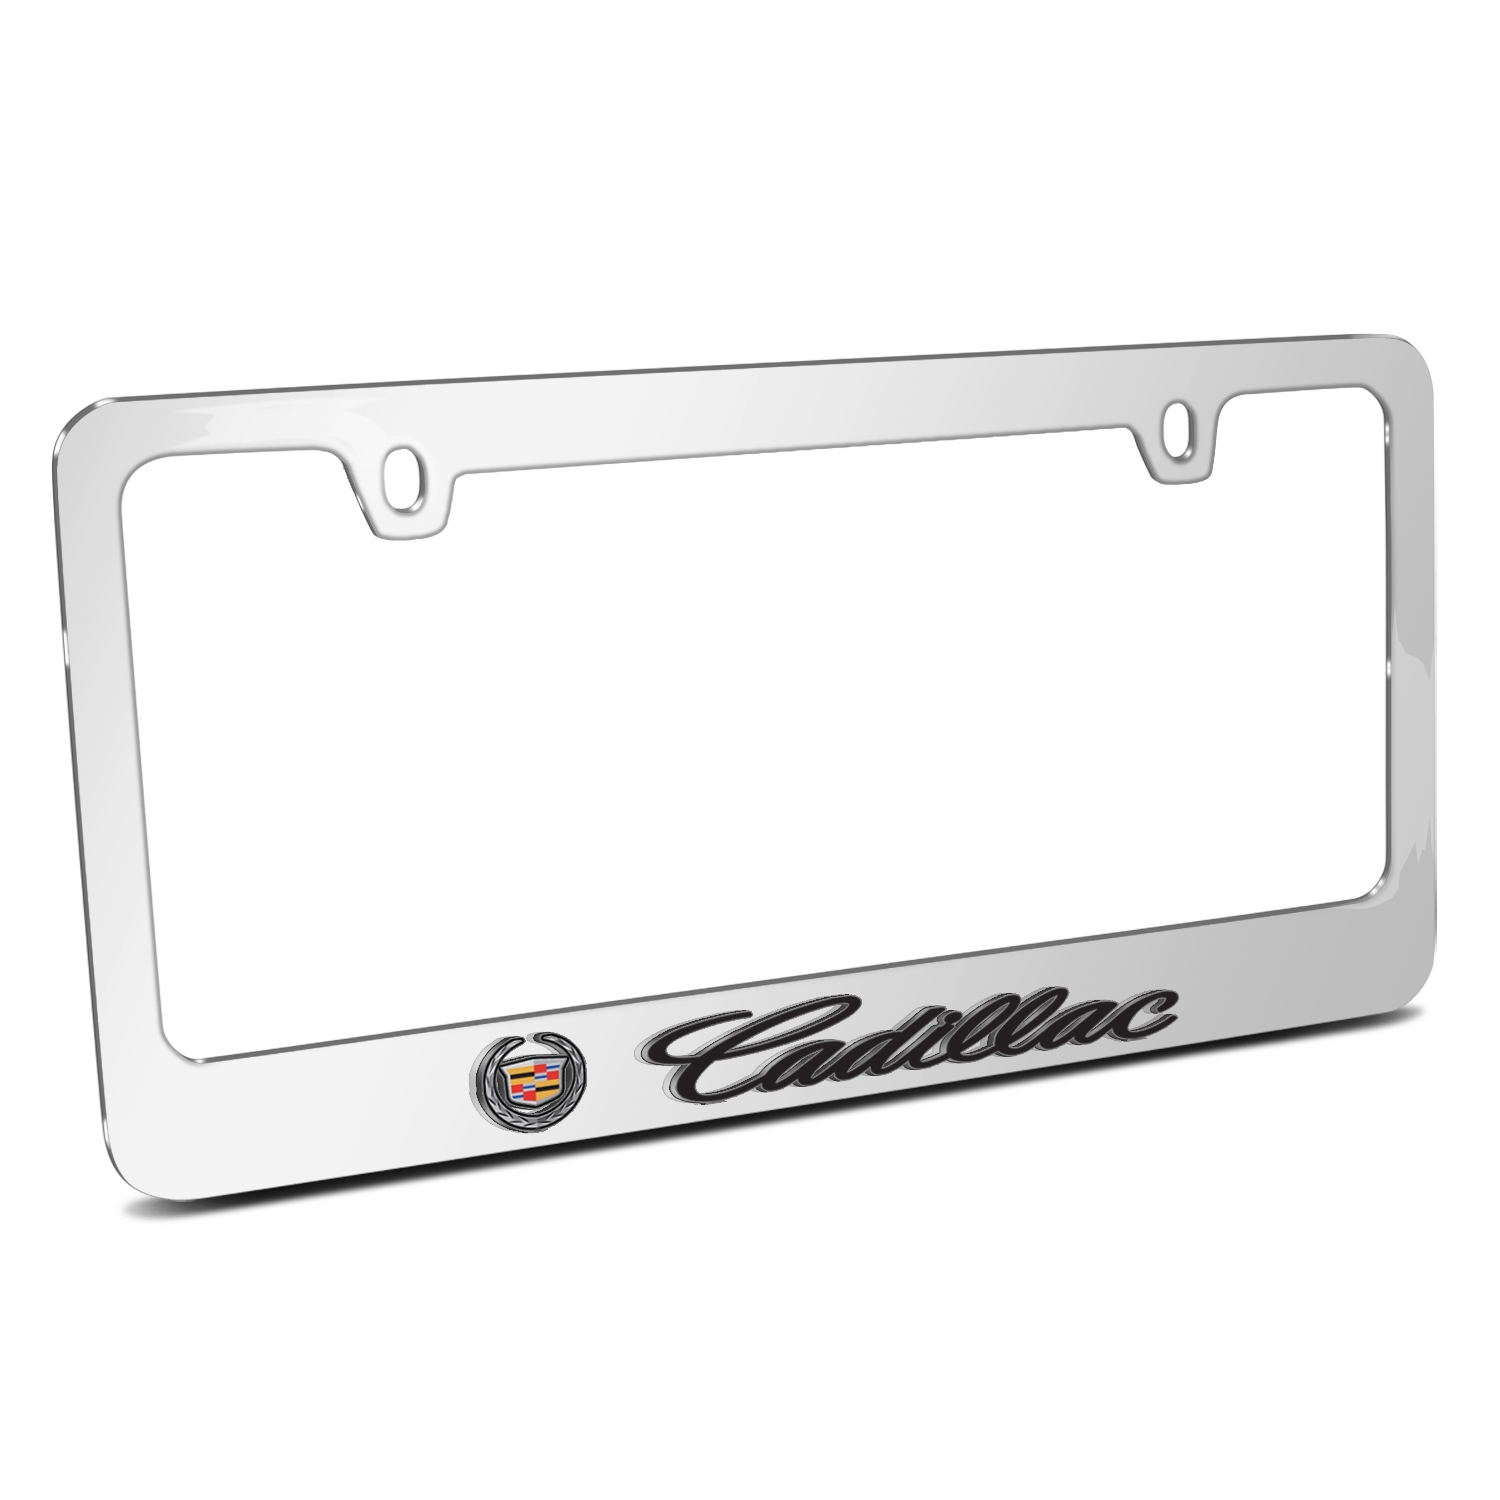 Cadillac 3D Embossed Logo Mirror Chrome Metal License Plate Frame